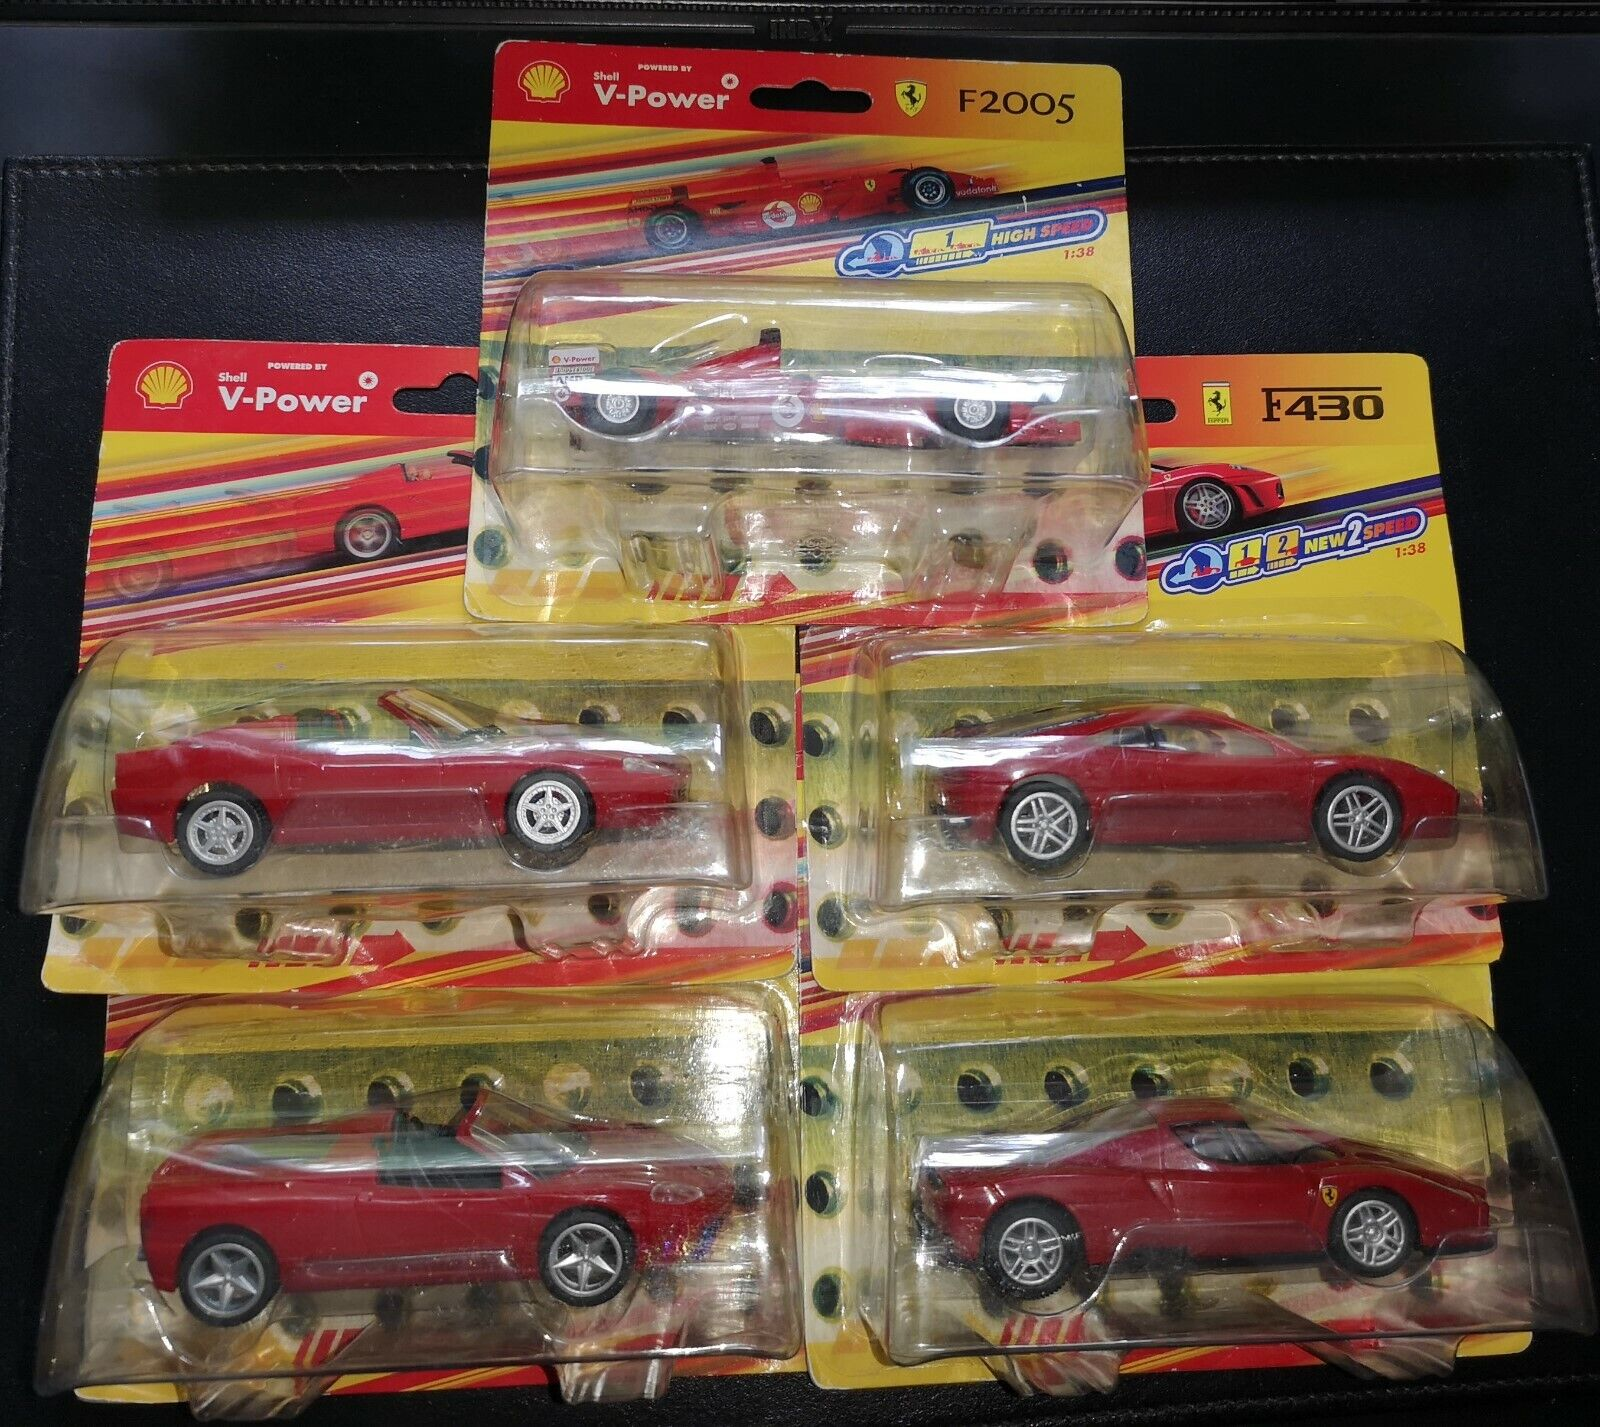 5 Ferrari Red Models Officially Licenced